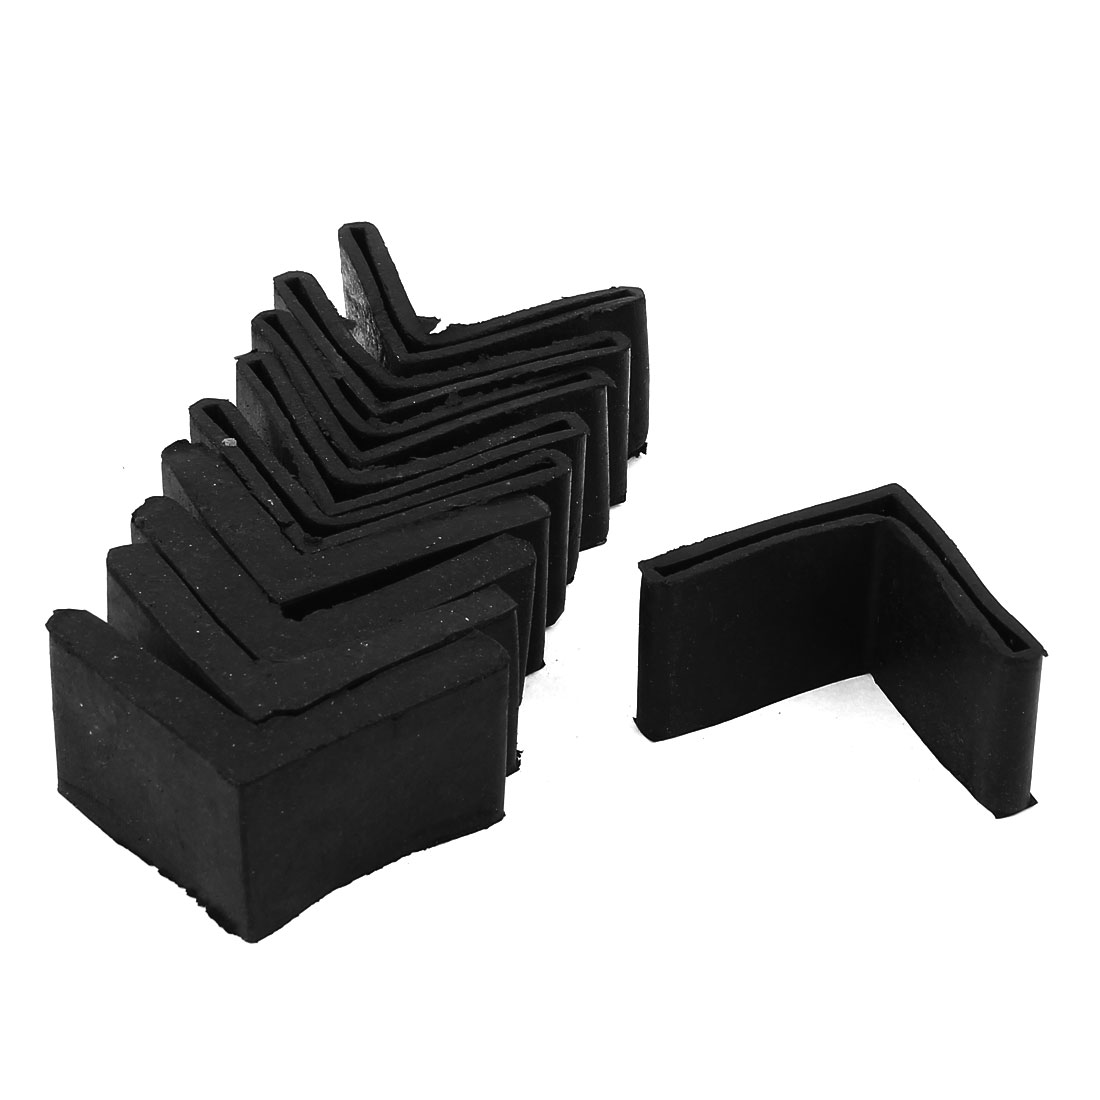 10 Pcs Triangle Shaped Furniture Table Corner Cushion Protector 55mmx55mm Black